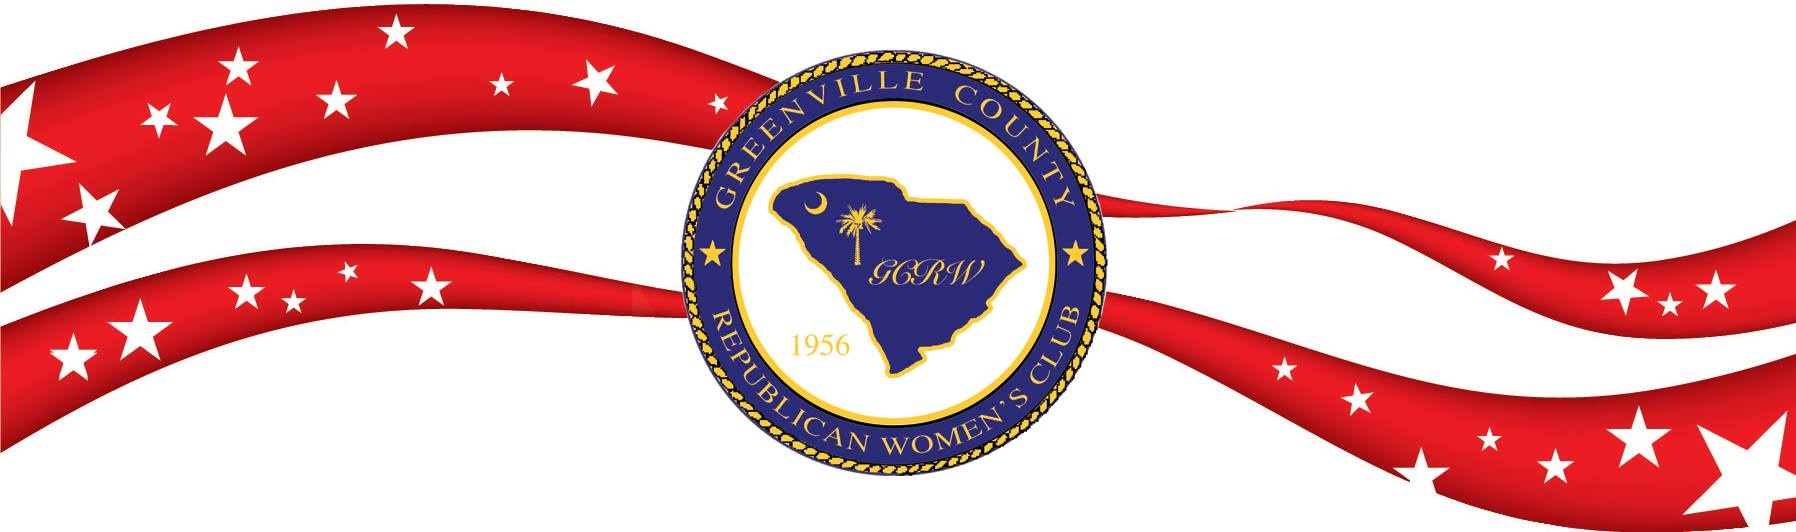 Greenville Republican Women Club - John Di Lemme